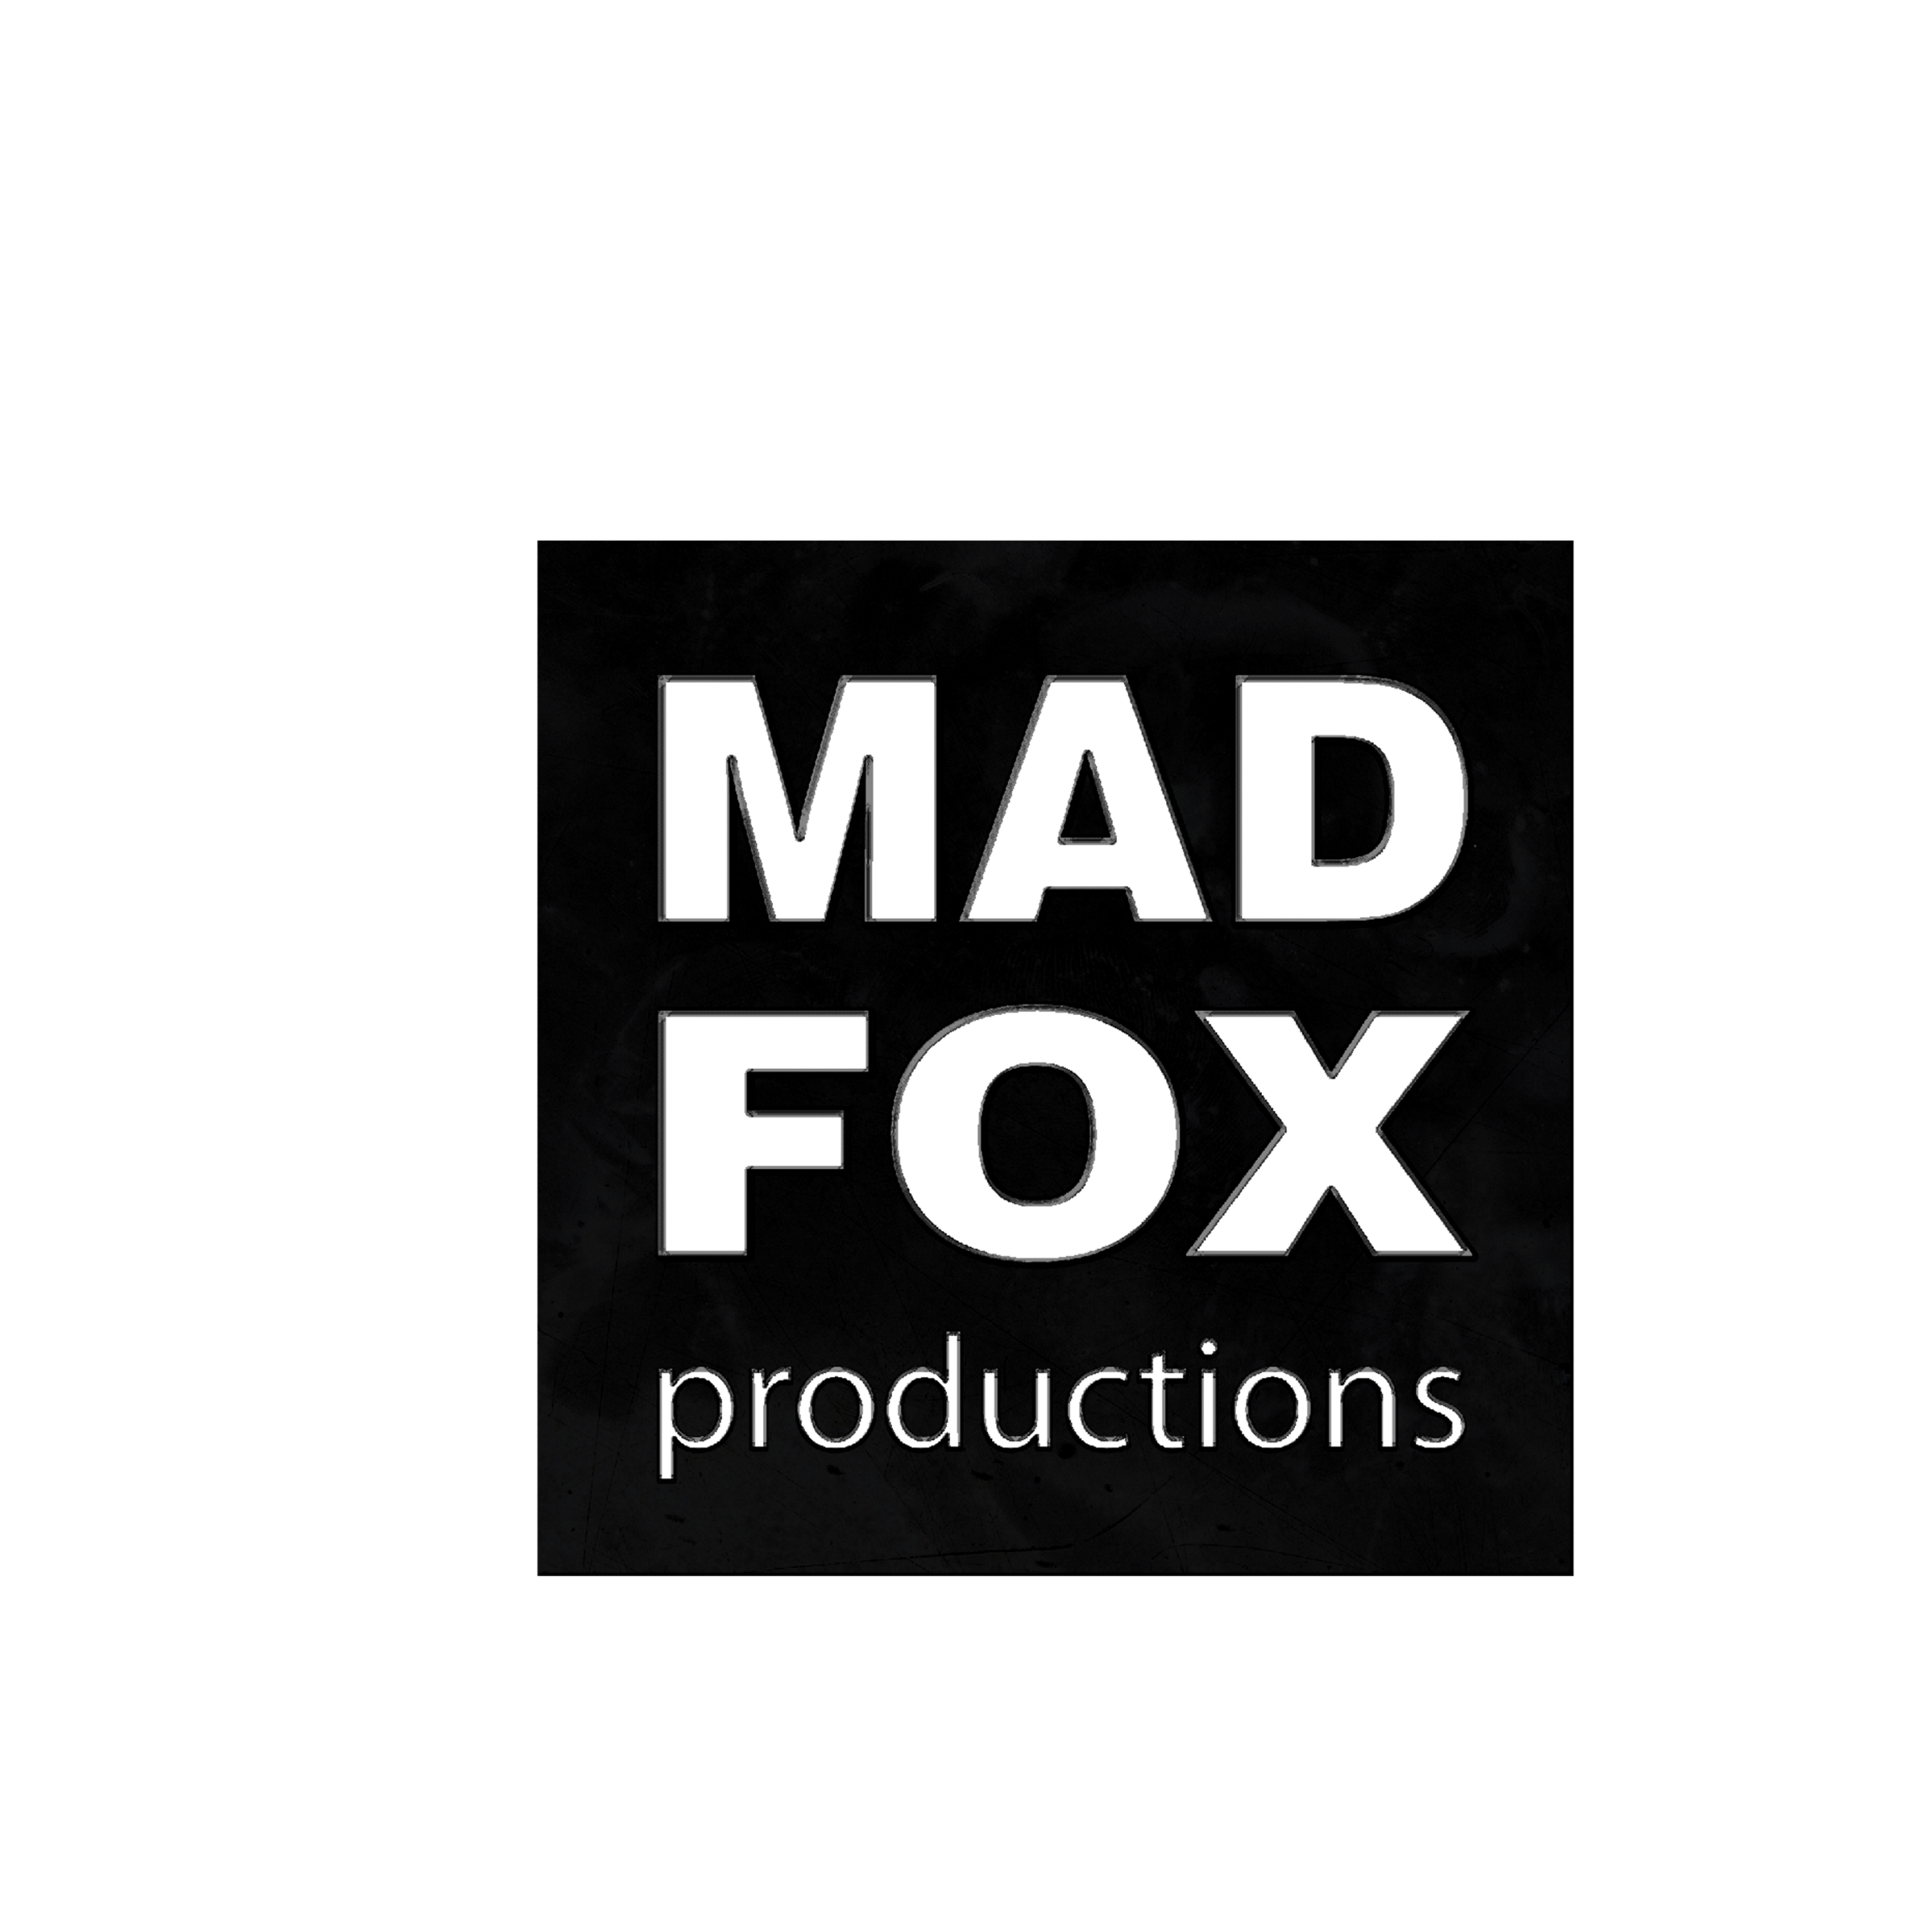 MAD FOX productions